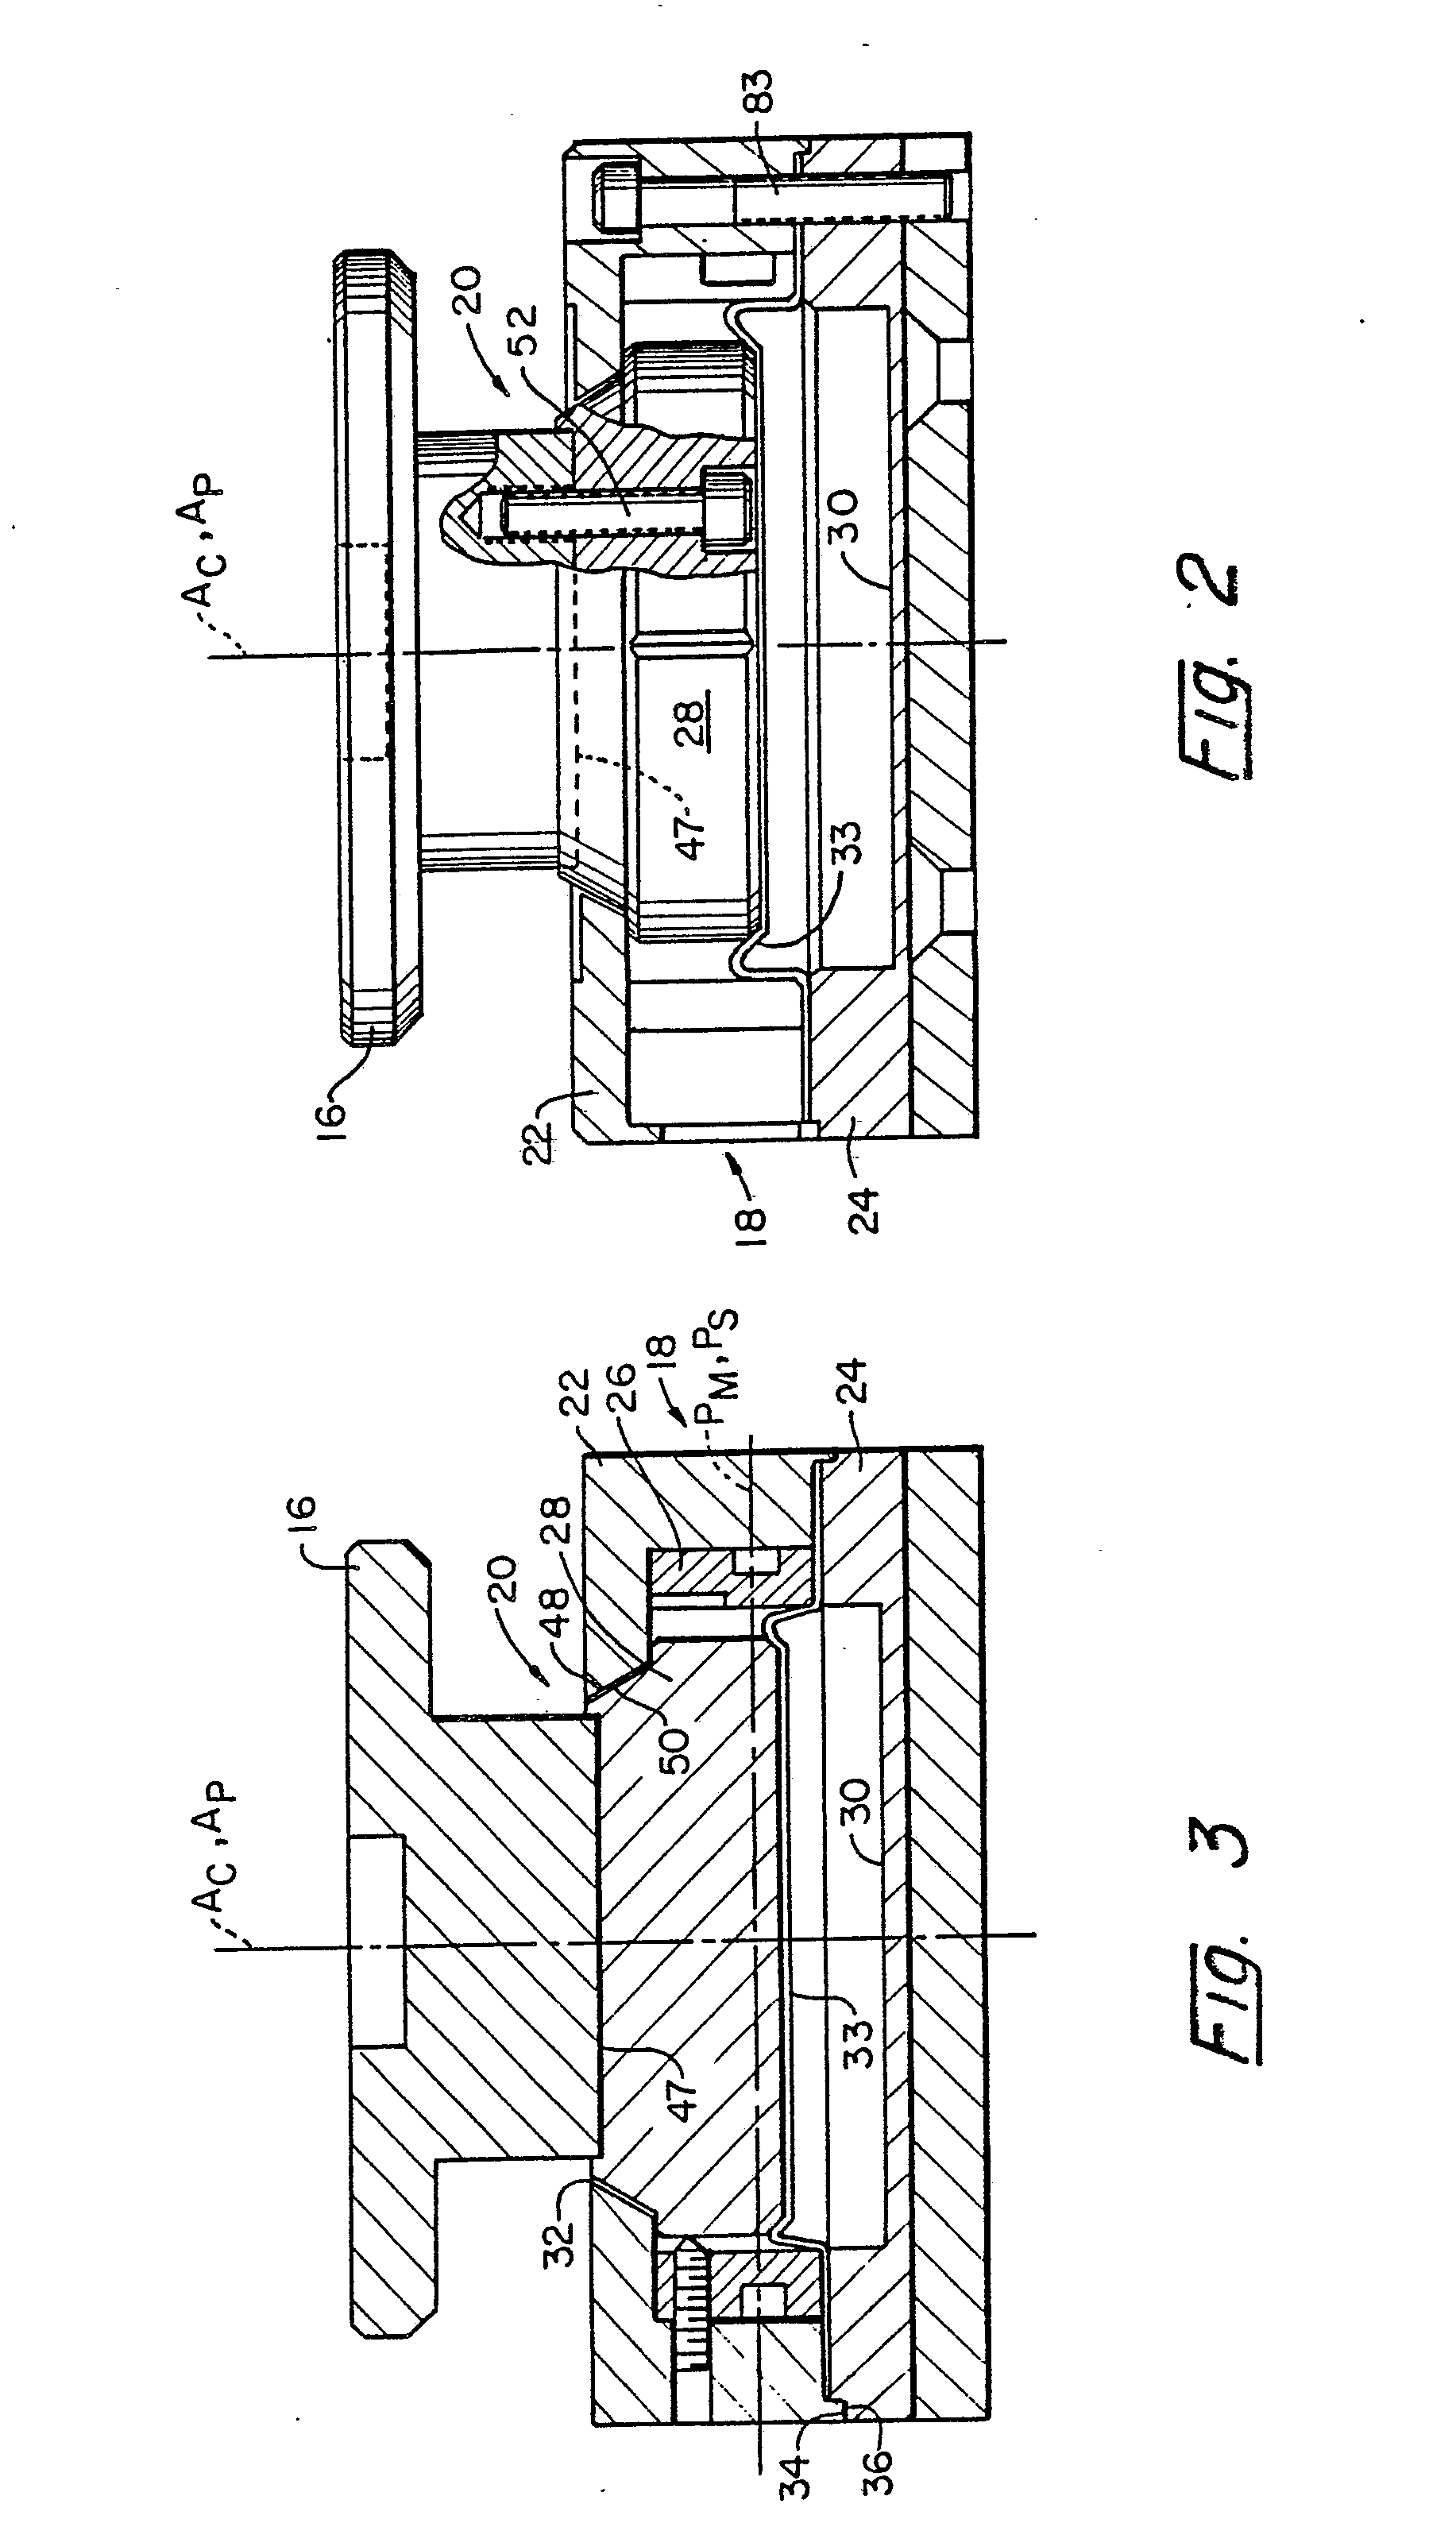 patent ep0250133a1 - overload protection device